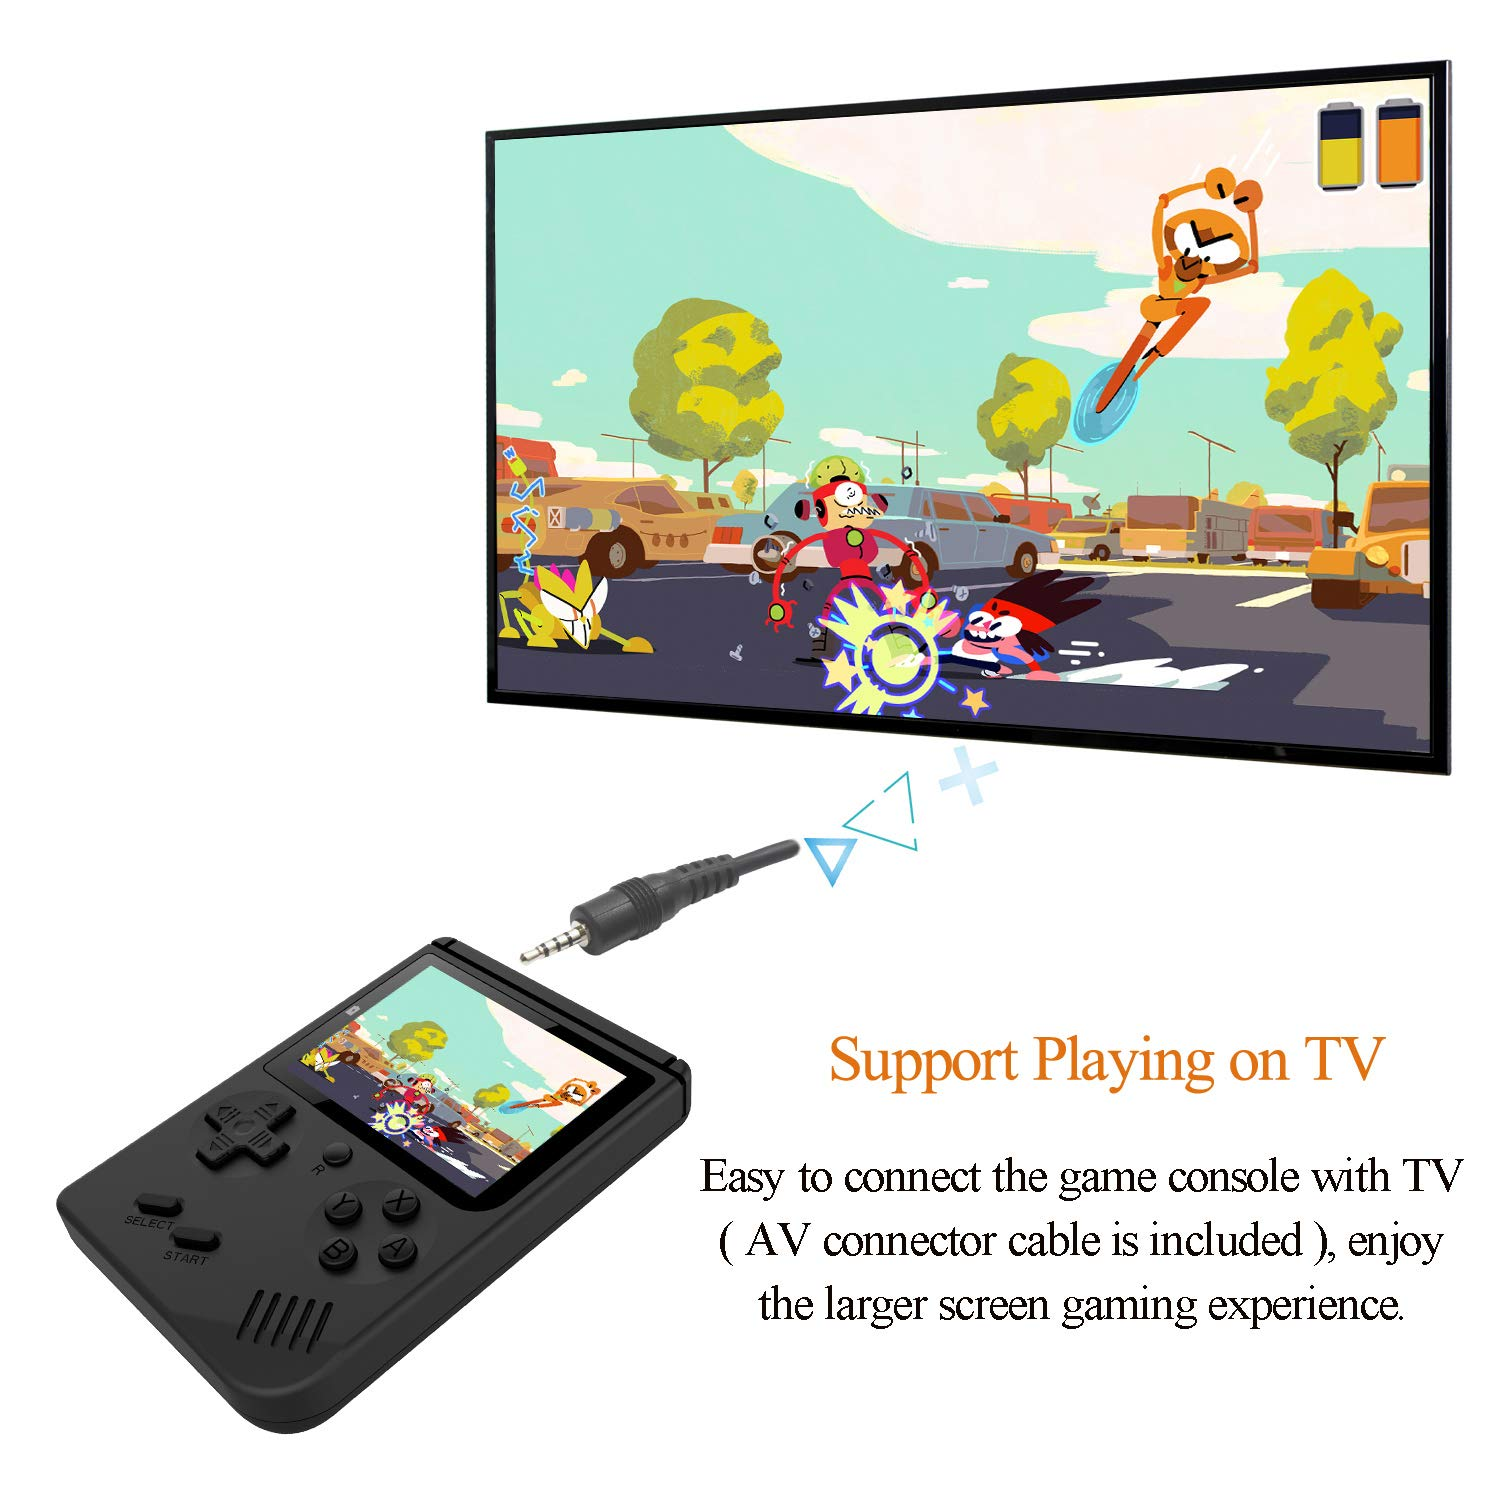 Handheld Games Console for Kids Adults - Retro Video Games Consoles 3 inch Screen 168 Classic Games 8 Bit Game Player with AV Cable Can Play on TV (Black) by Chilartalent (Image #4)